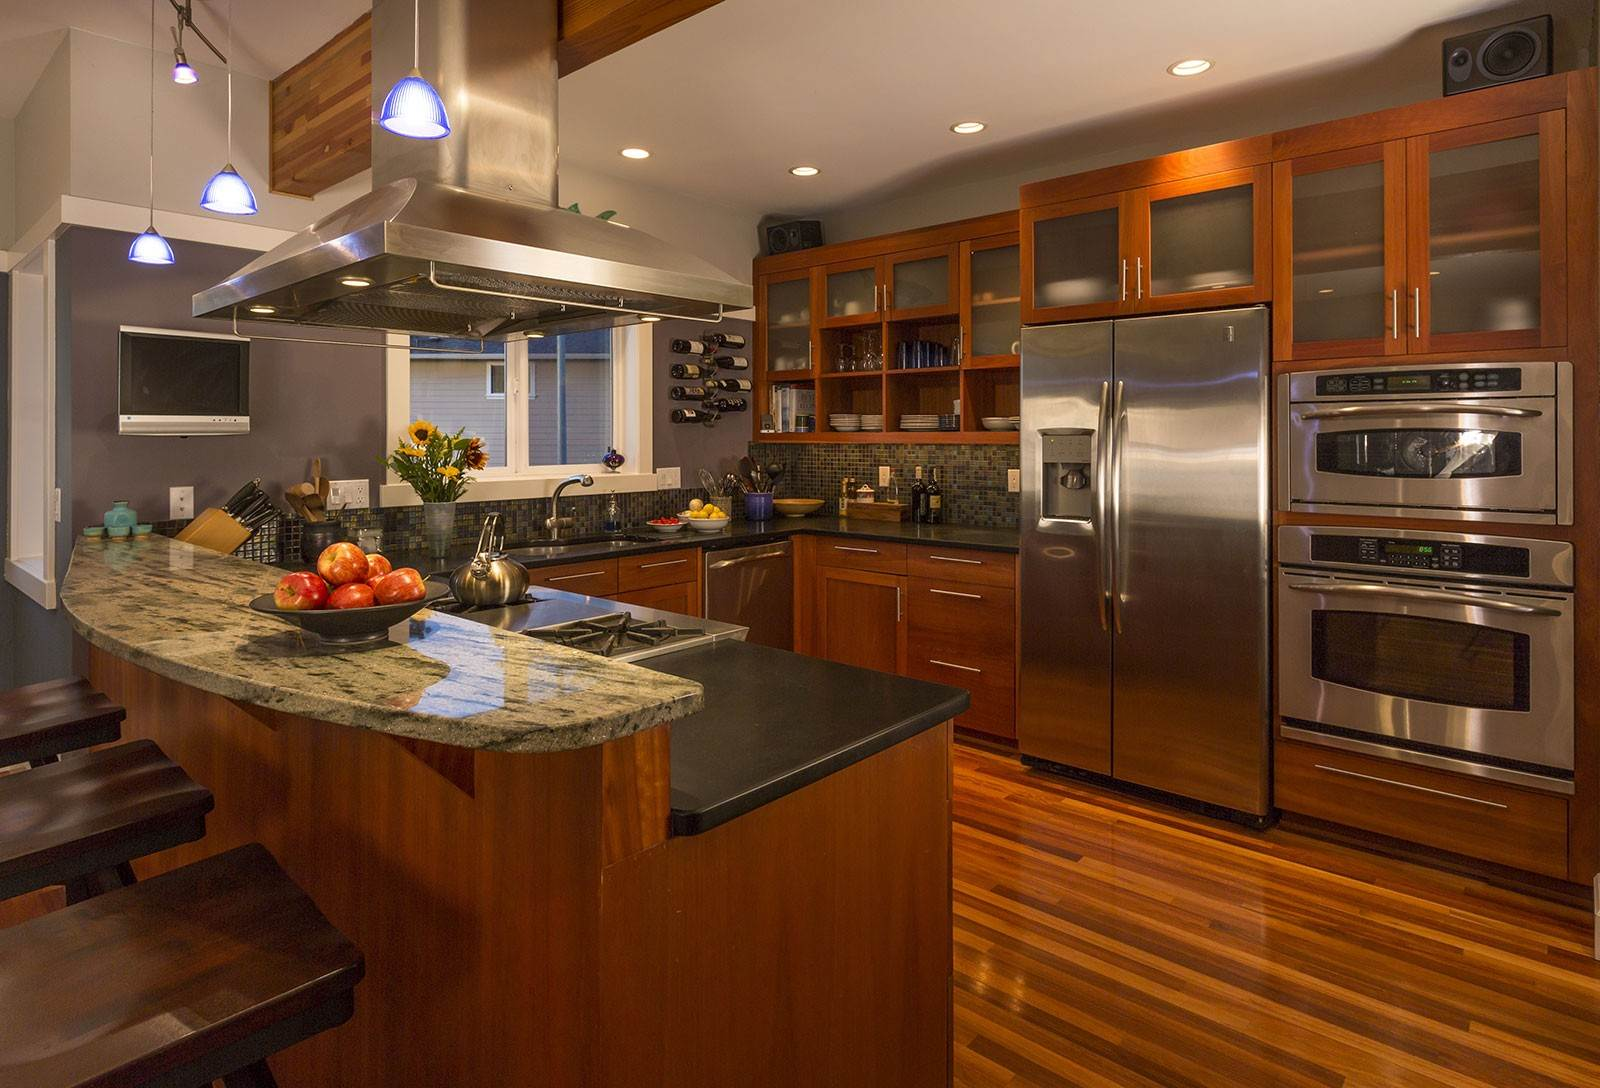 High End Care - Appliance Repair Services High End Care